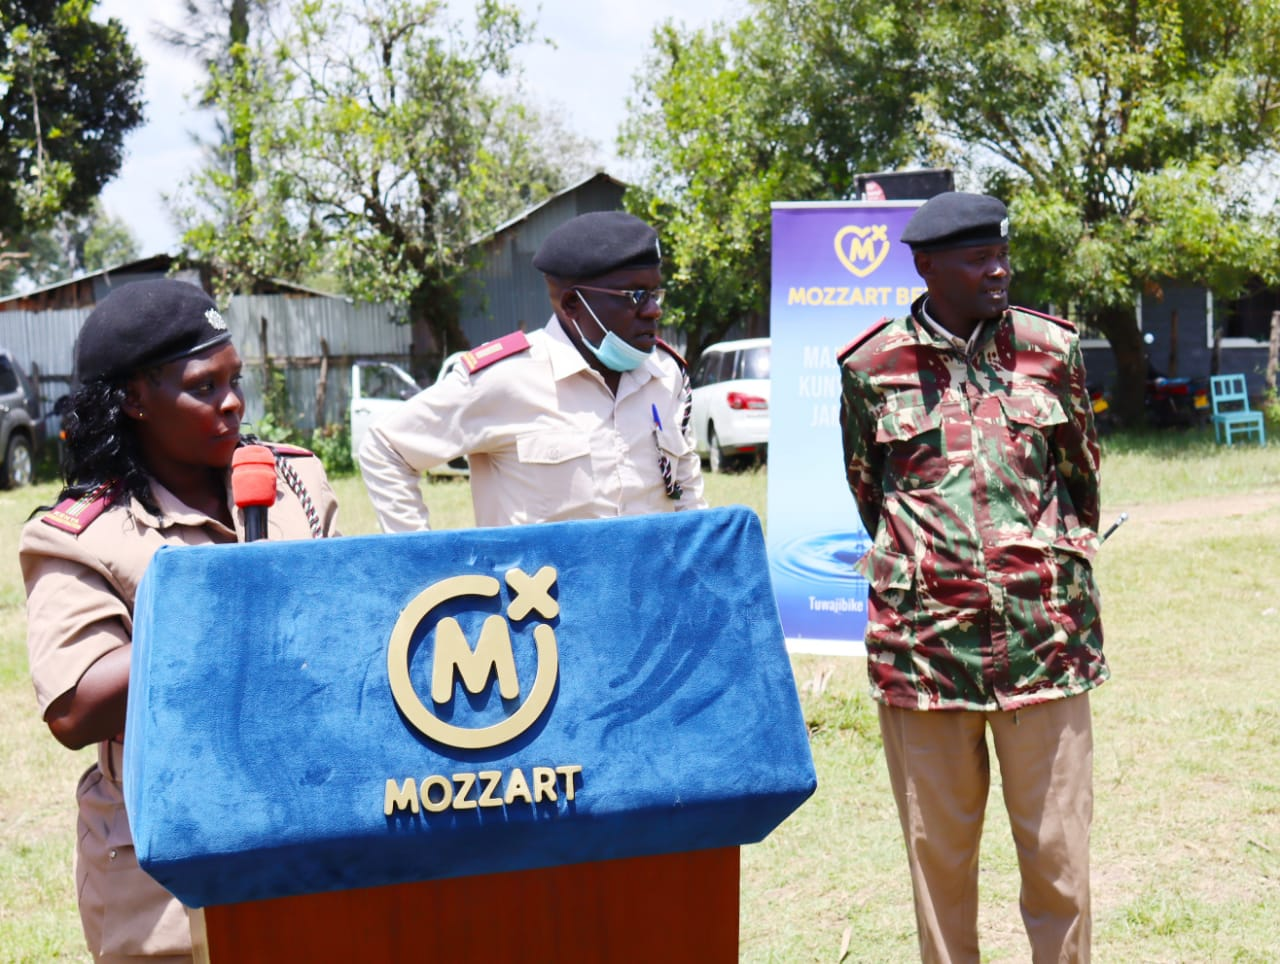 Mrs. Mercy Langat, the Area Chief speaks during the Mozzart event.